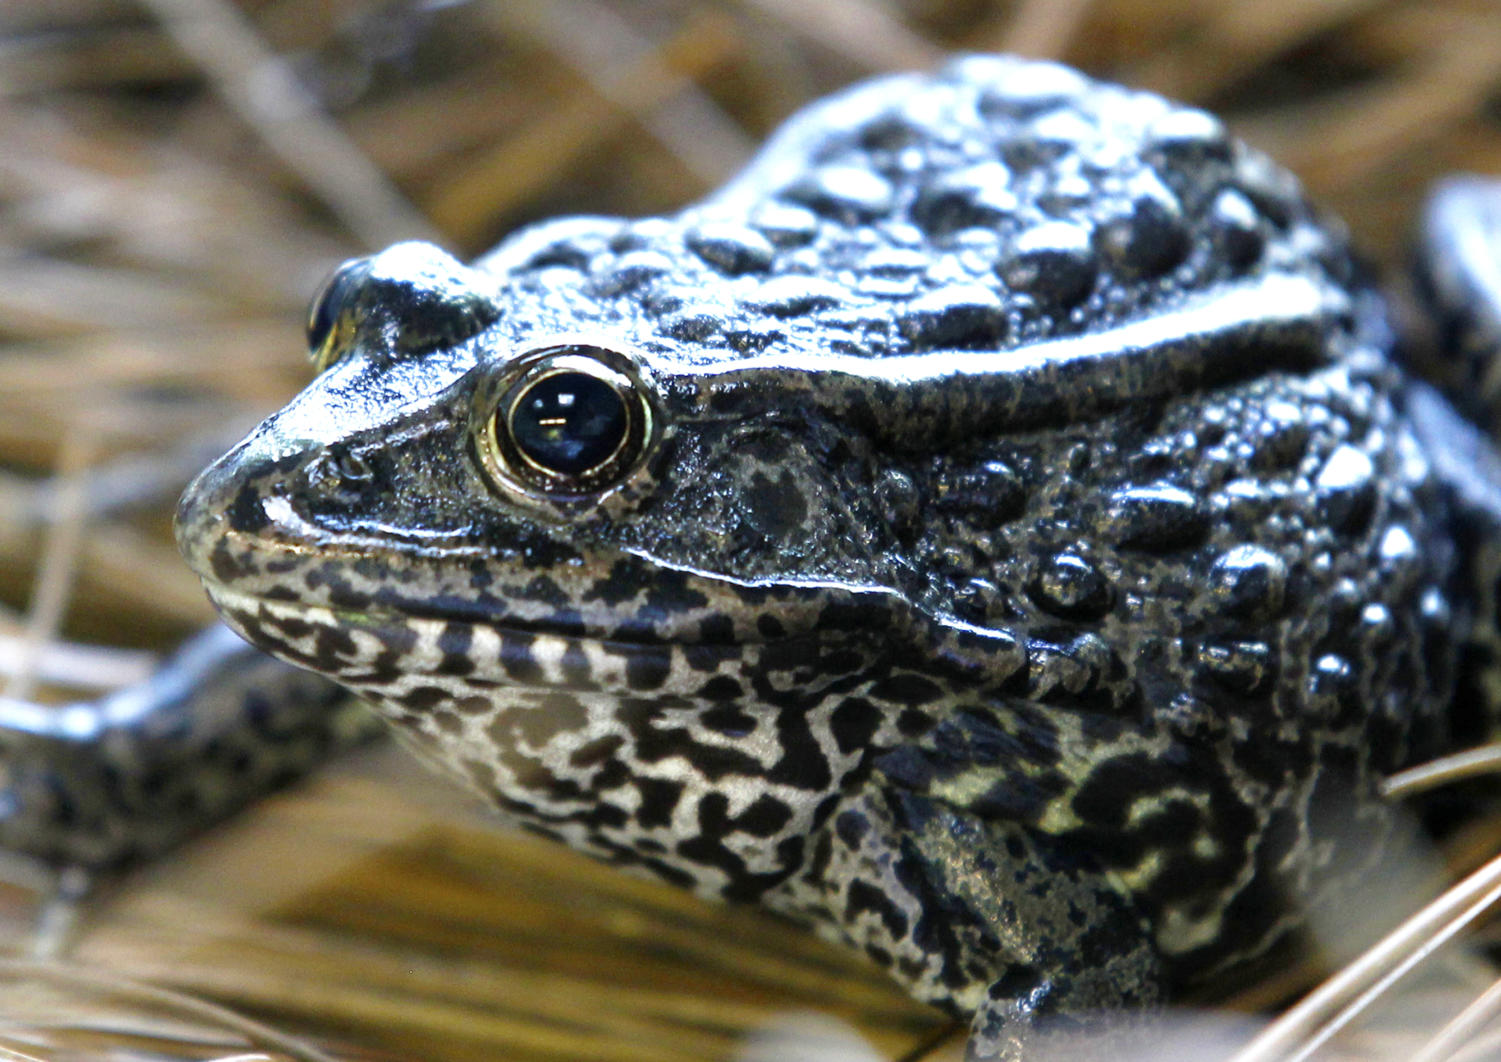 """FILE - This Sept. 27, 2011, file photo shows a gopher frog at the Audubon Zoo in New Orleans. The U.S. Supreme Court said Tuesday, Nov. 27, 2018 that a Louisiana-based federal appeals court must take another look at a federal agency's designation of a tract of Louisiana timberland as """"critical habitat"""" for gopher frogs, endangered frogs currently found only in Mississippi. (AP Photo/Gerald Herbert, File)"""